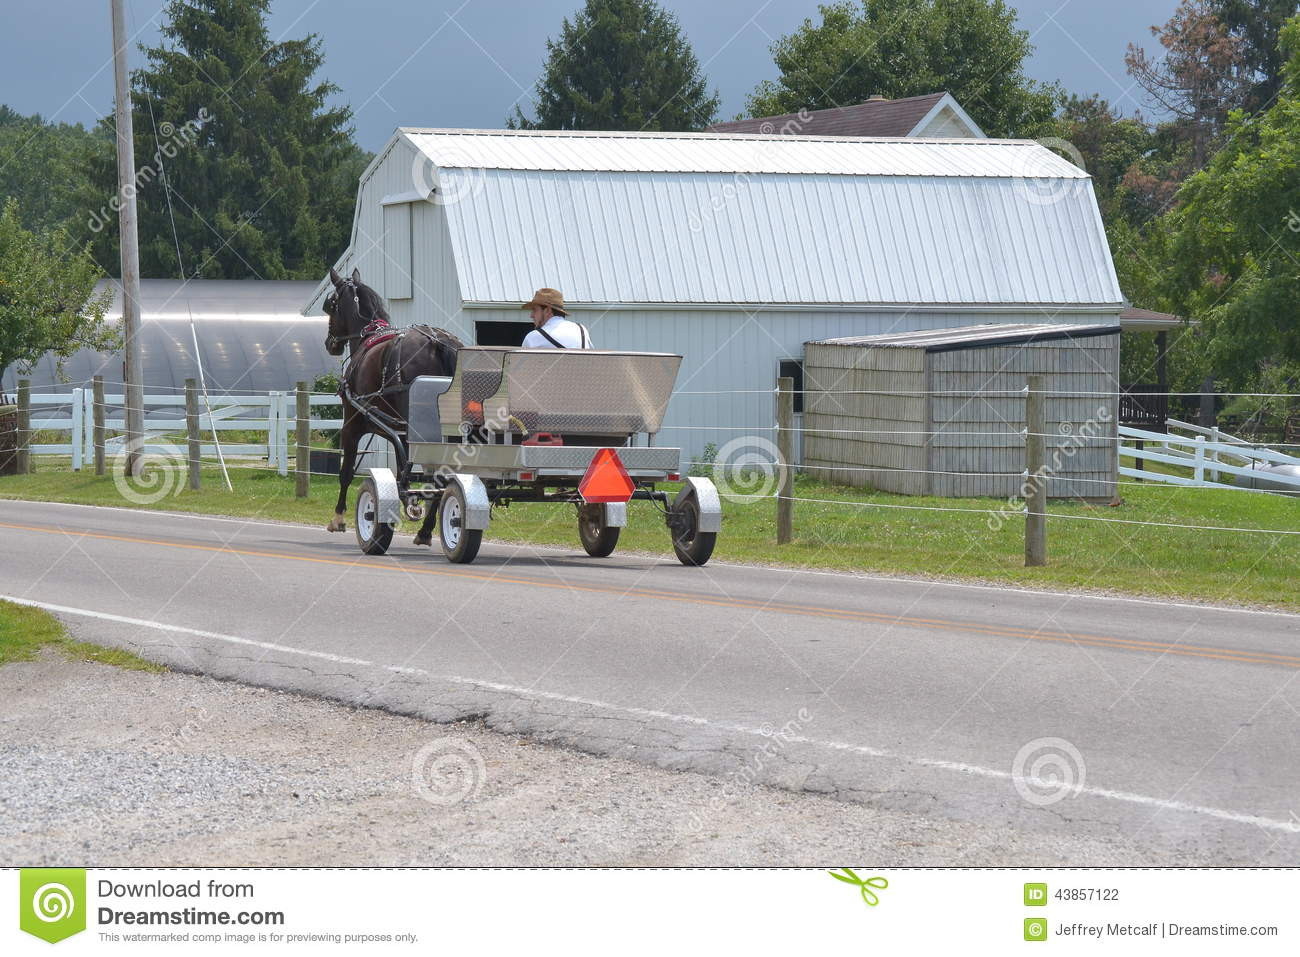 Homme amish conduisant le chariot